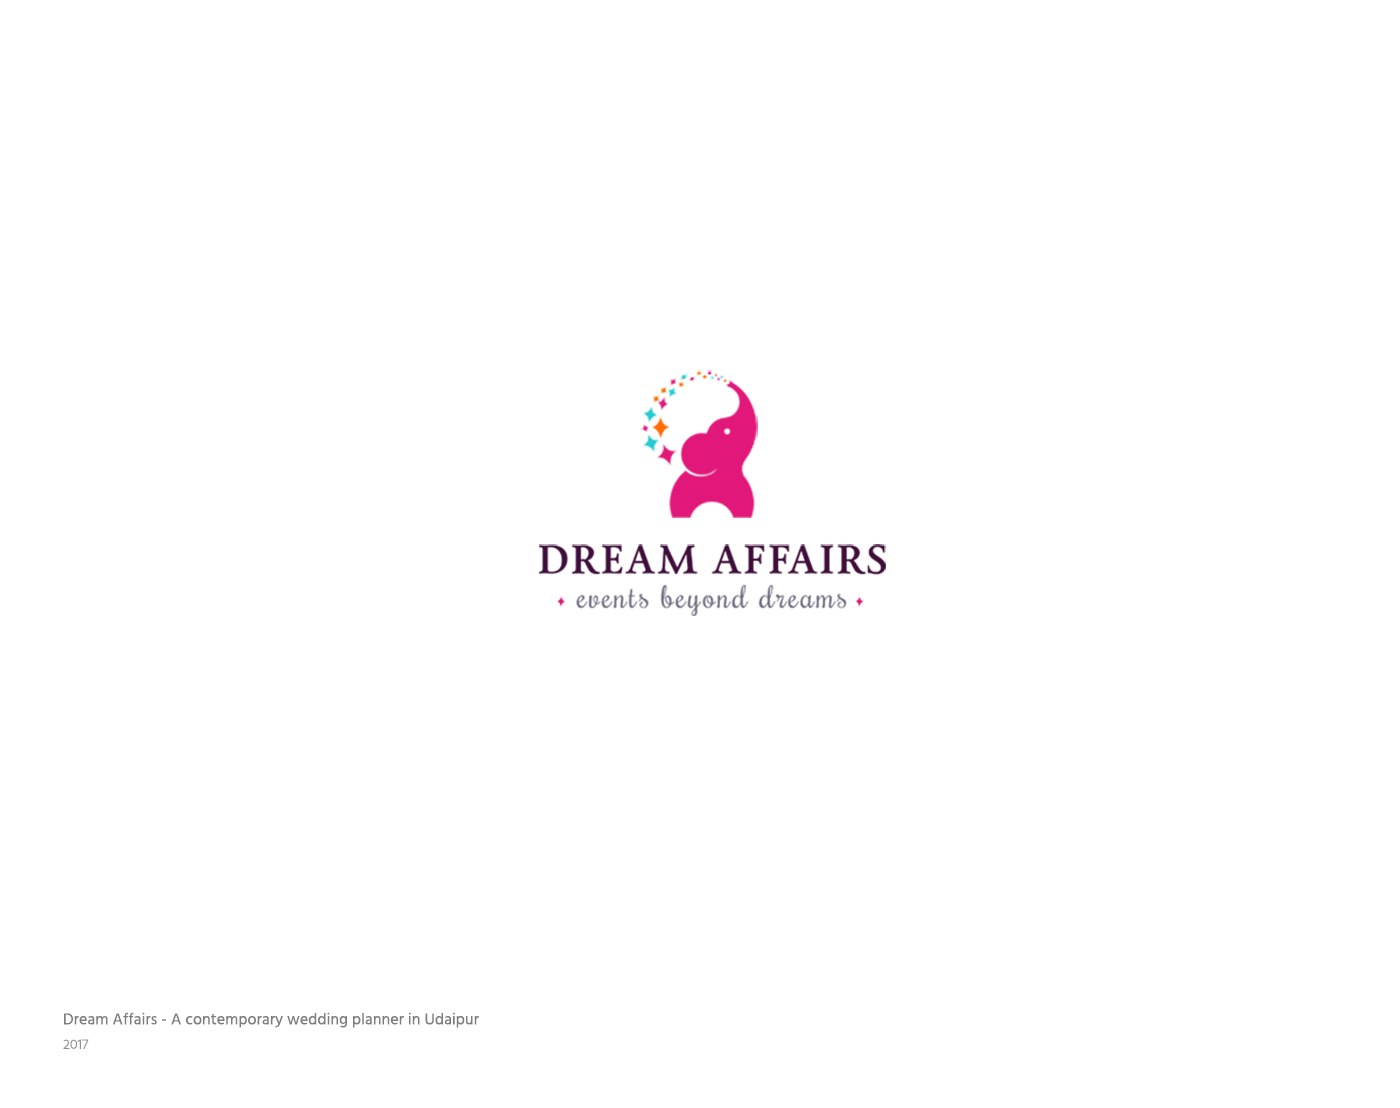 Dream Affairs Events Branding